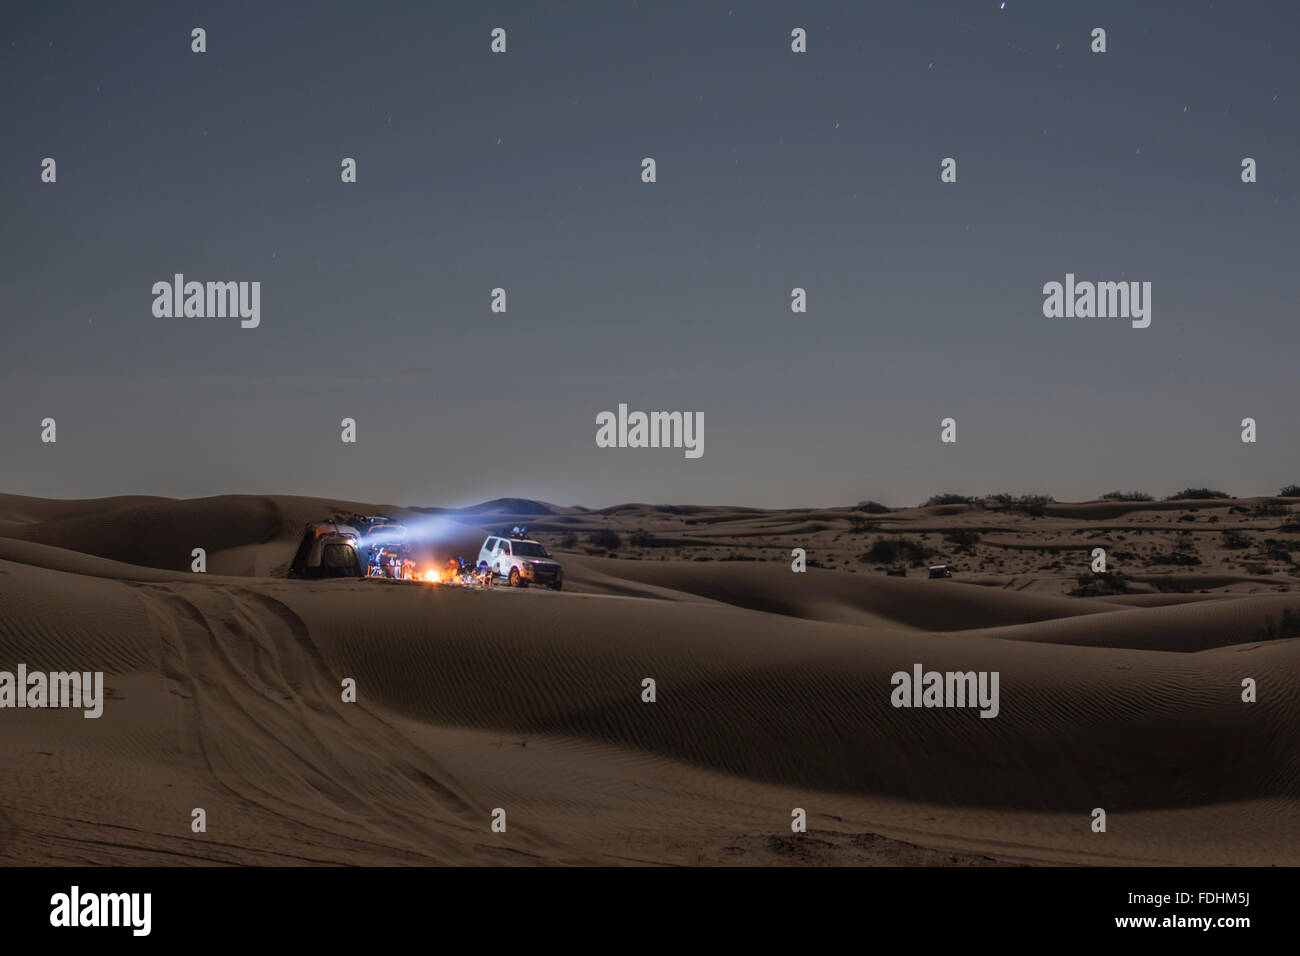 Camping in the Desert of Wahiba Sands - Stock Image